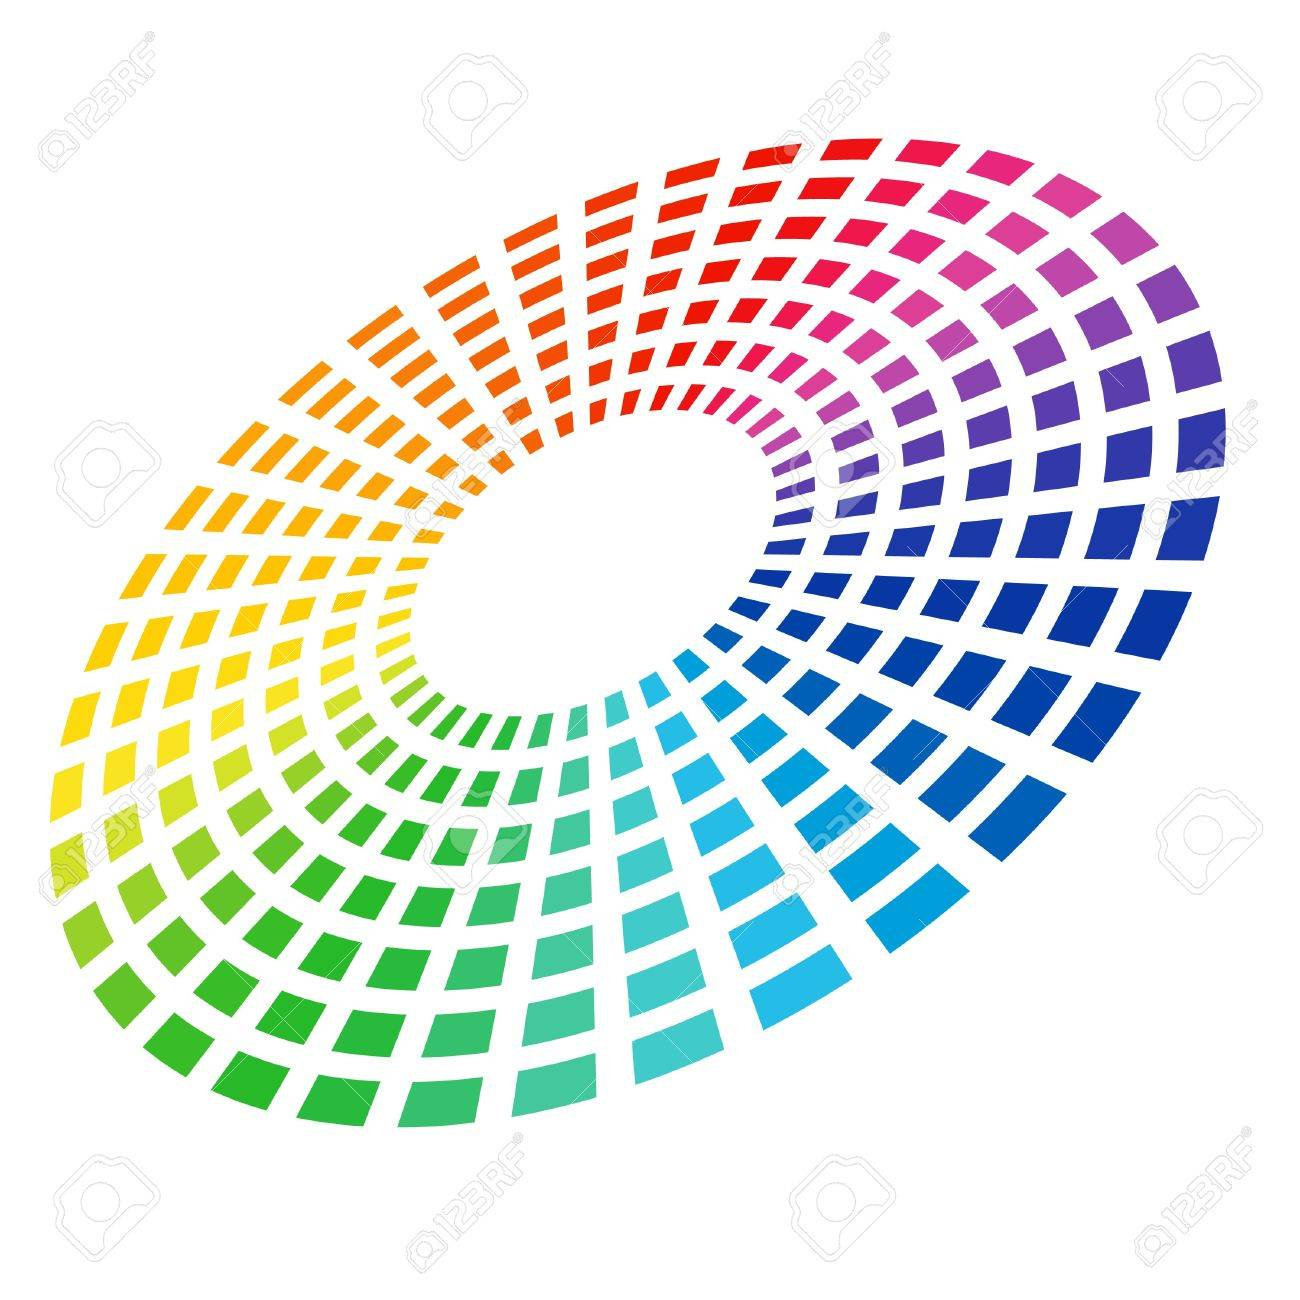 Colorful Graphic Equalizer. Circle in space. illustration on white. Stock Vector - 8711644